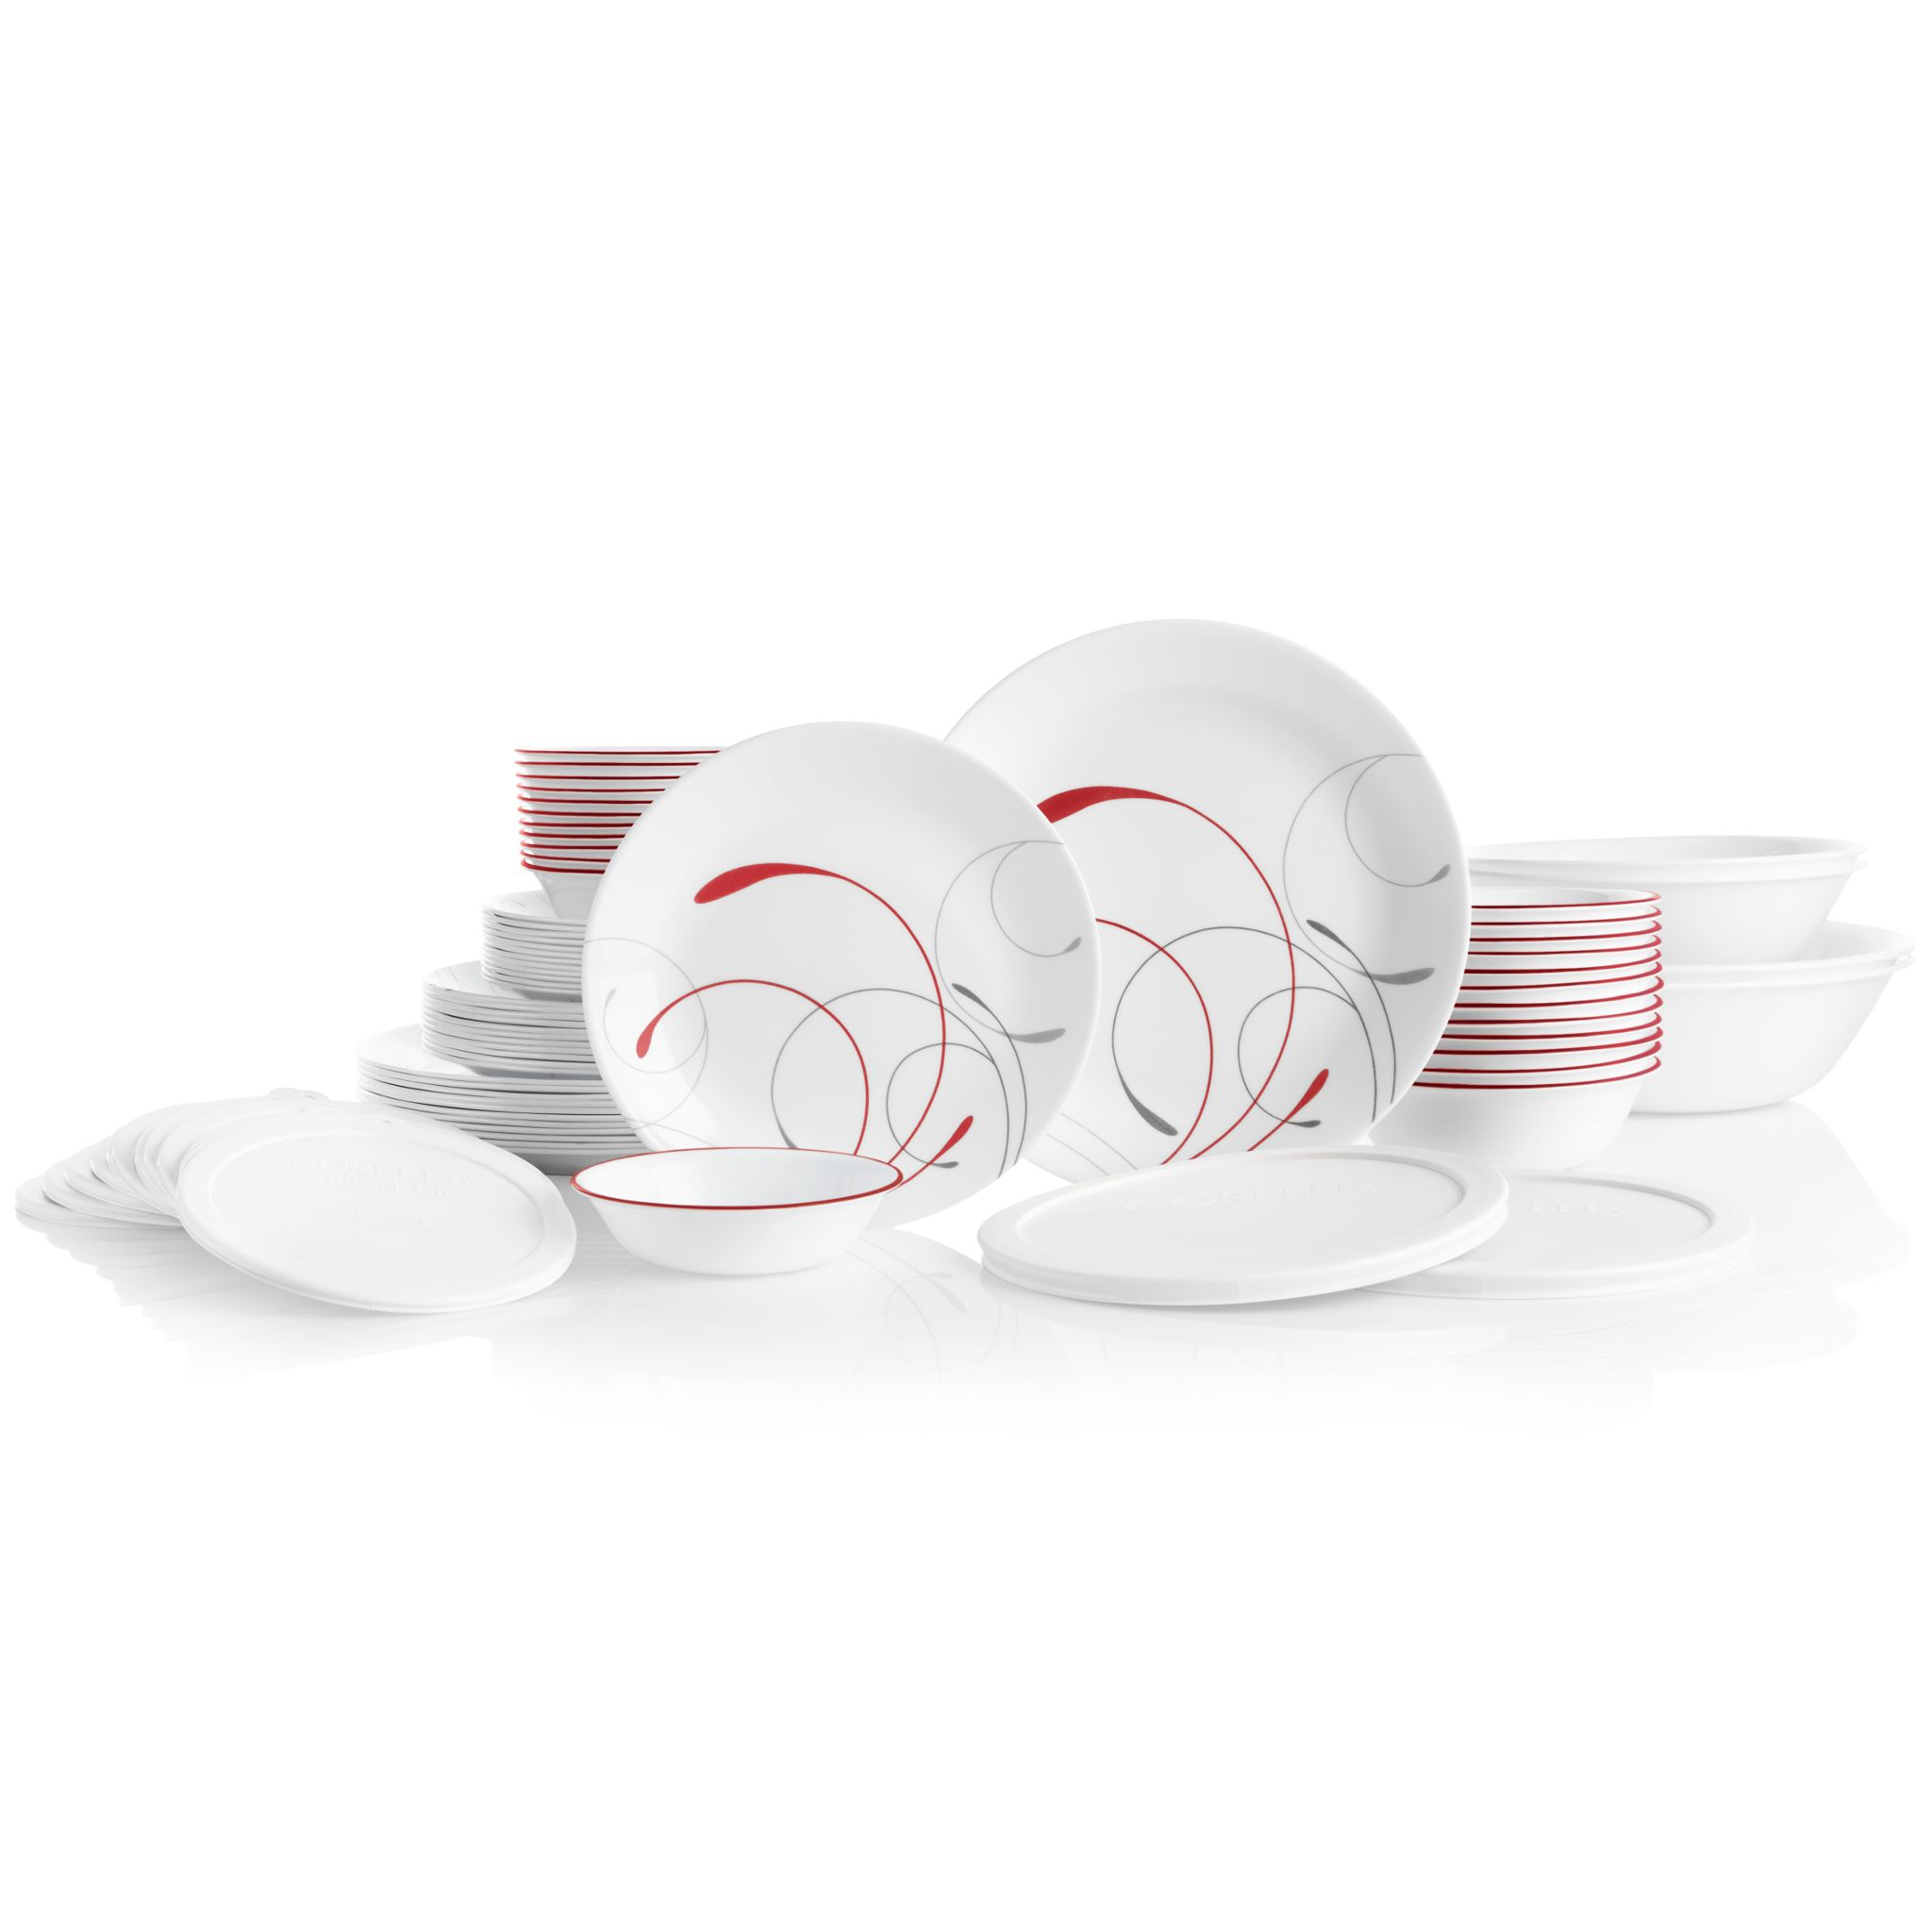 Corelle_Classic_Splendor_78pc_Dinnerware_Set